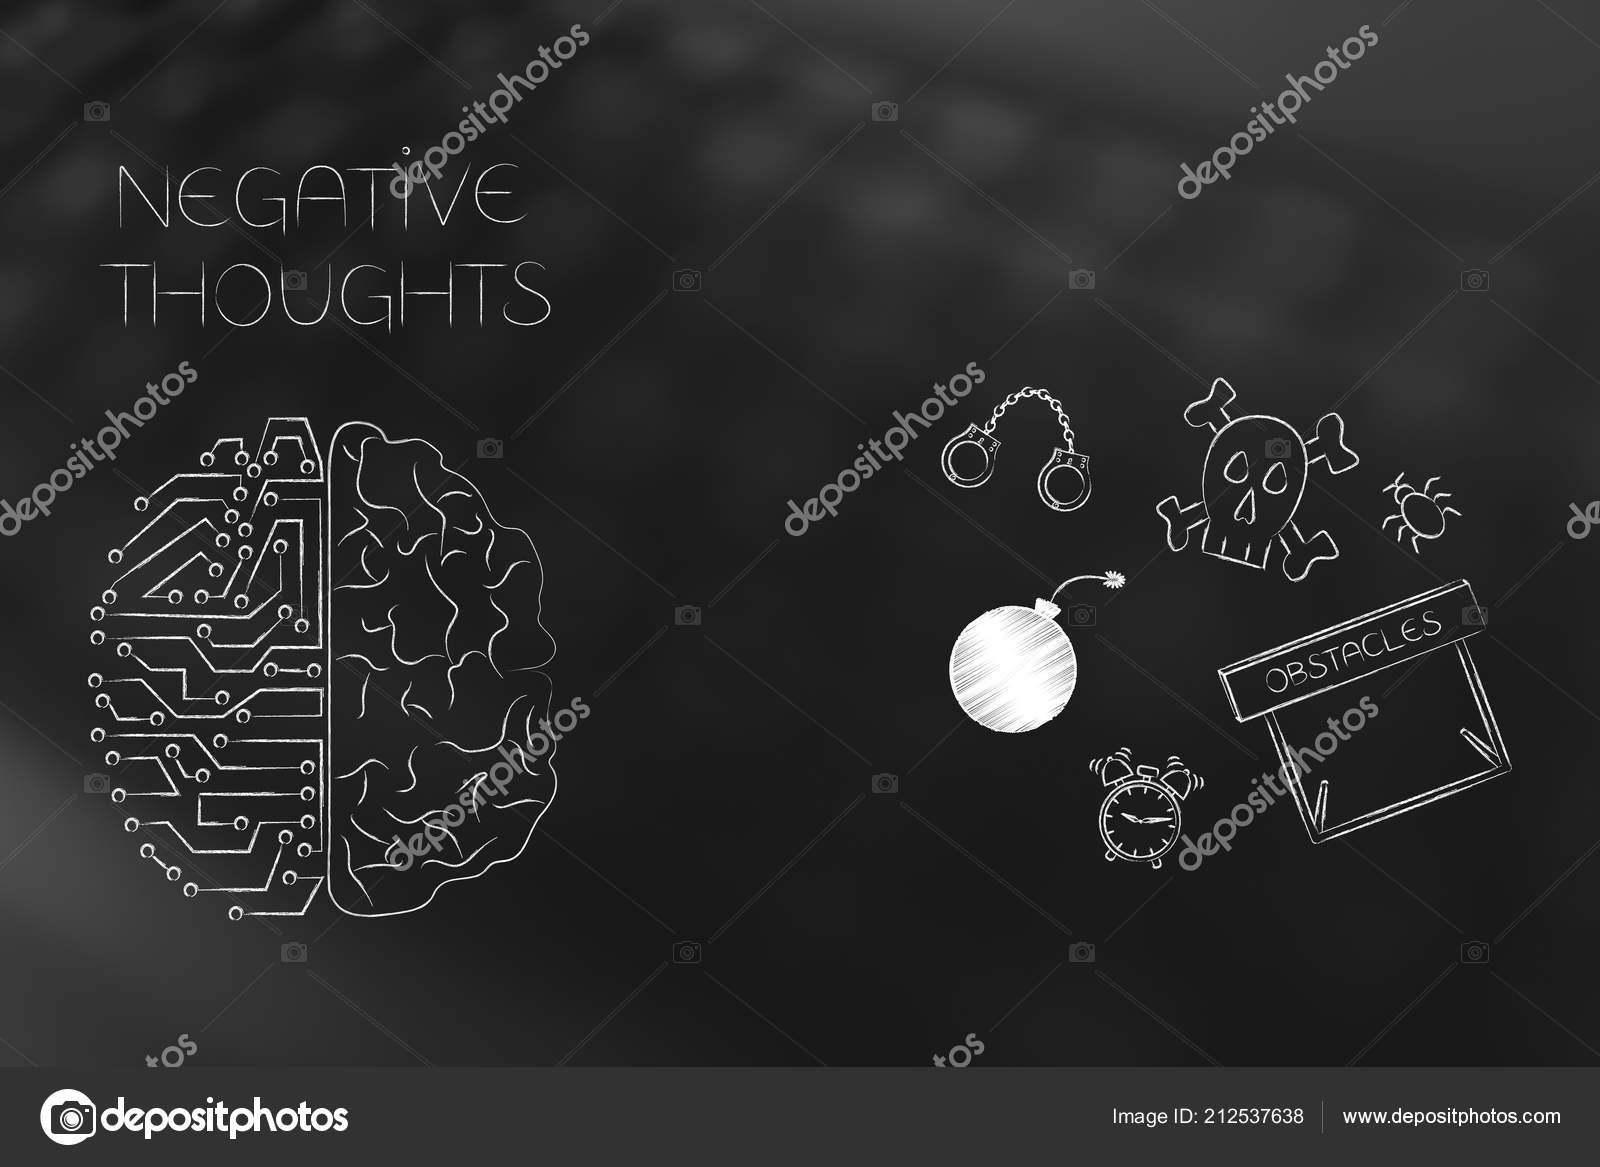 hight resolution of positive negative attitude conceptual illustration stressed thoughts circuit human brain stock photo